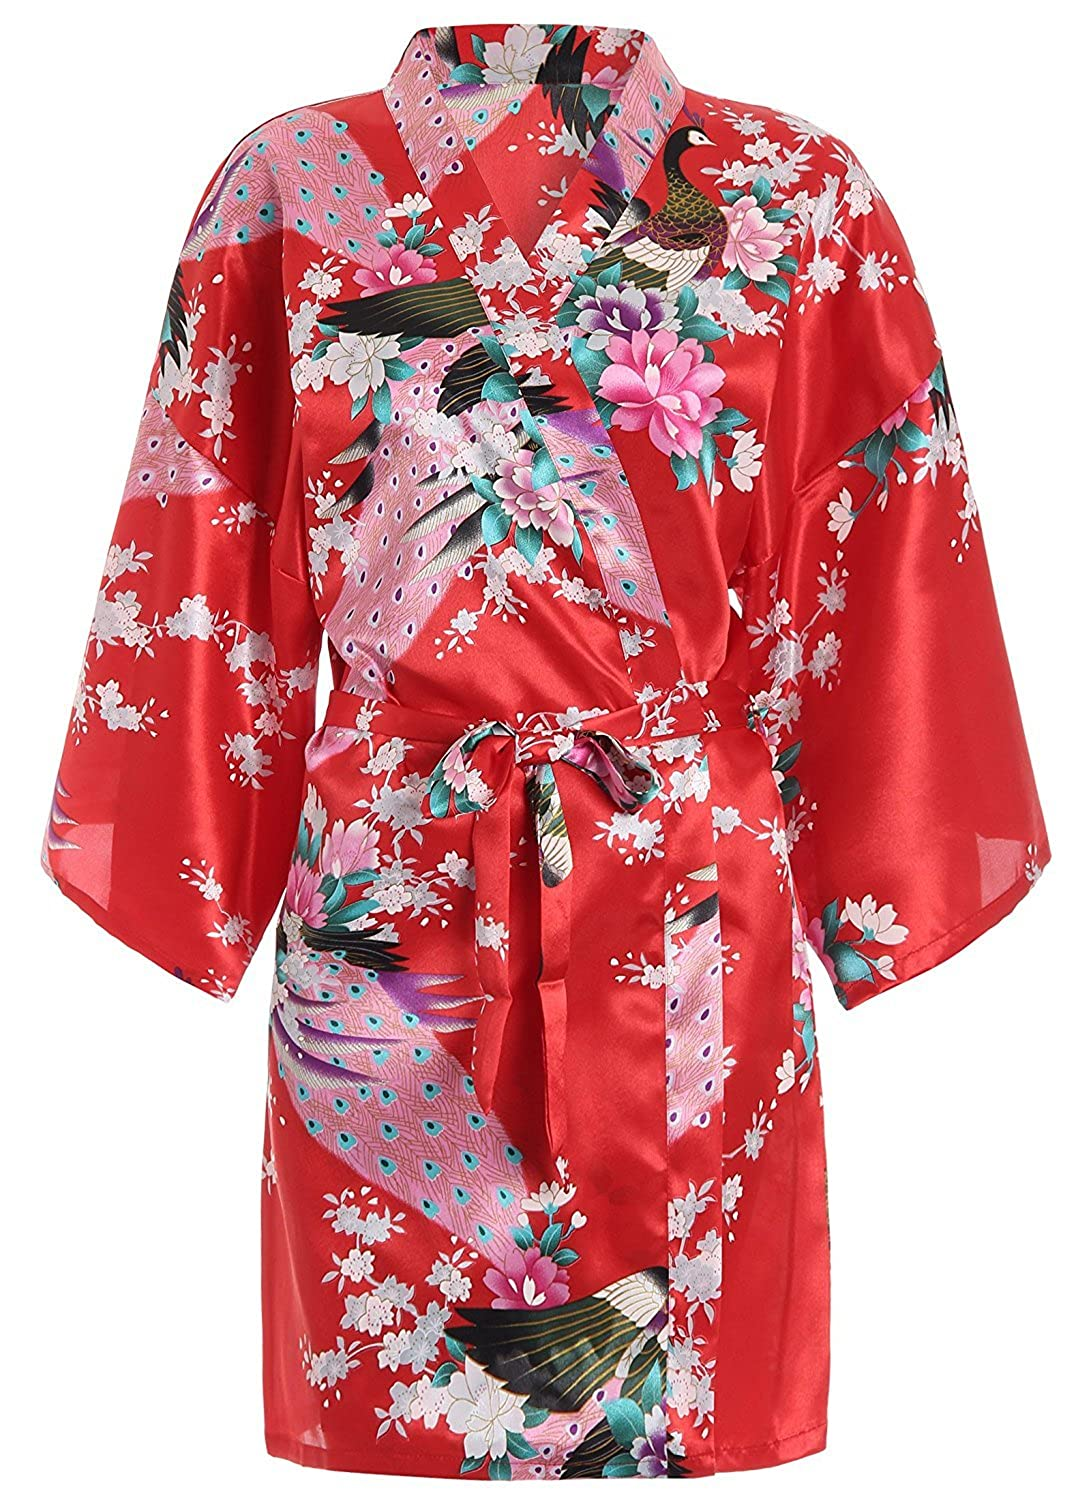 Hammia Womens Bridesmaid Robes Short Peacock Blossoms Kimono Robe Dressing Gown Floral Robes